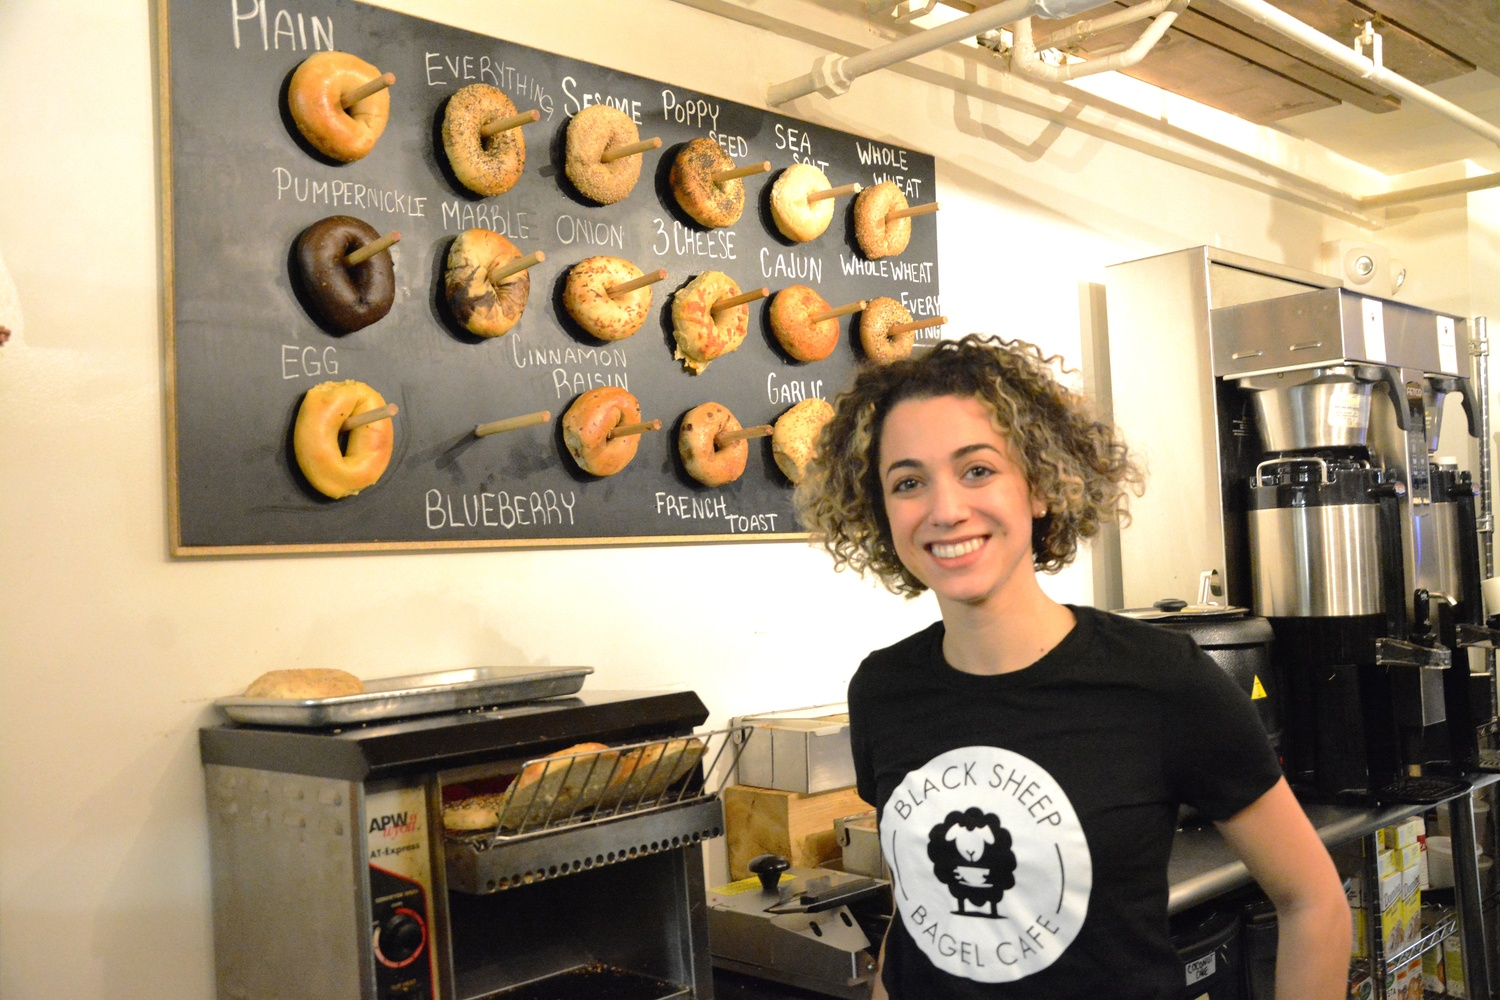 Shoshanah Garber owns the Harvard Square bagel shop, Black Sheep Bagel Cafe, which serves a variety of bagel-related meals.